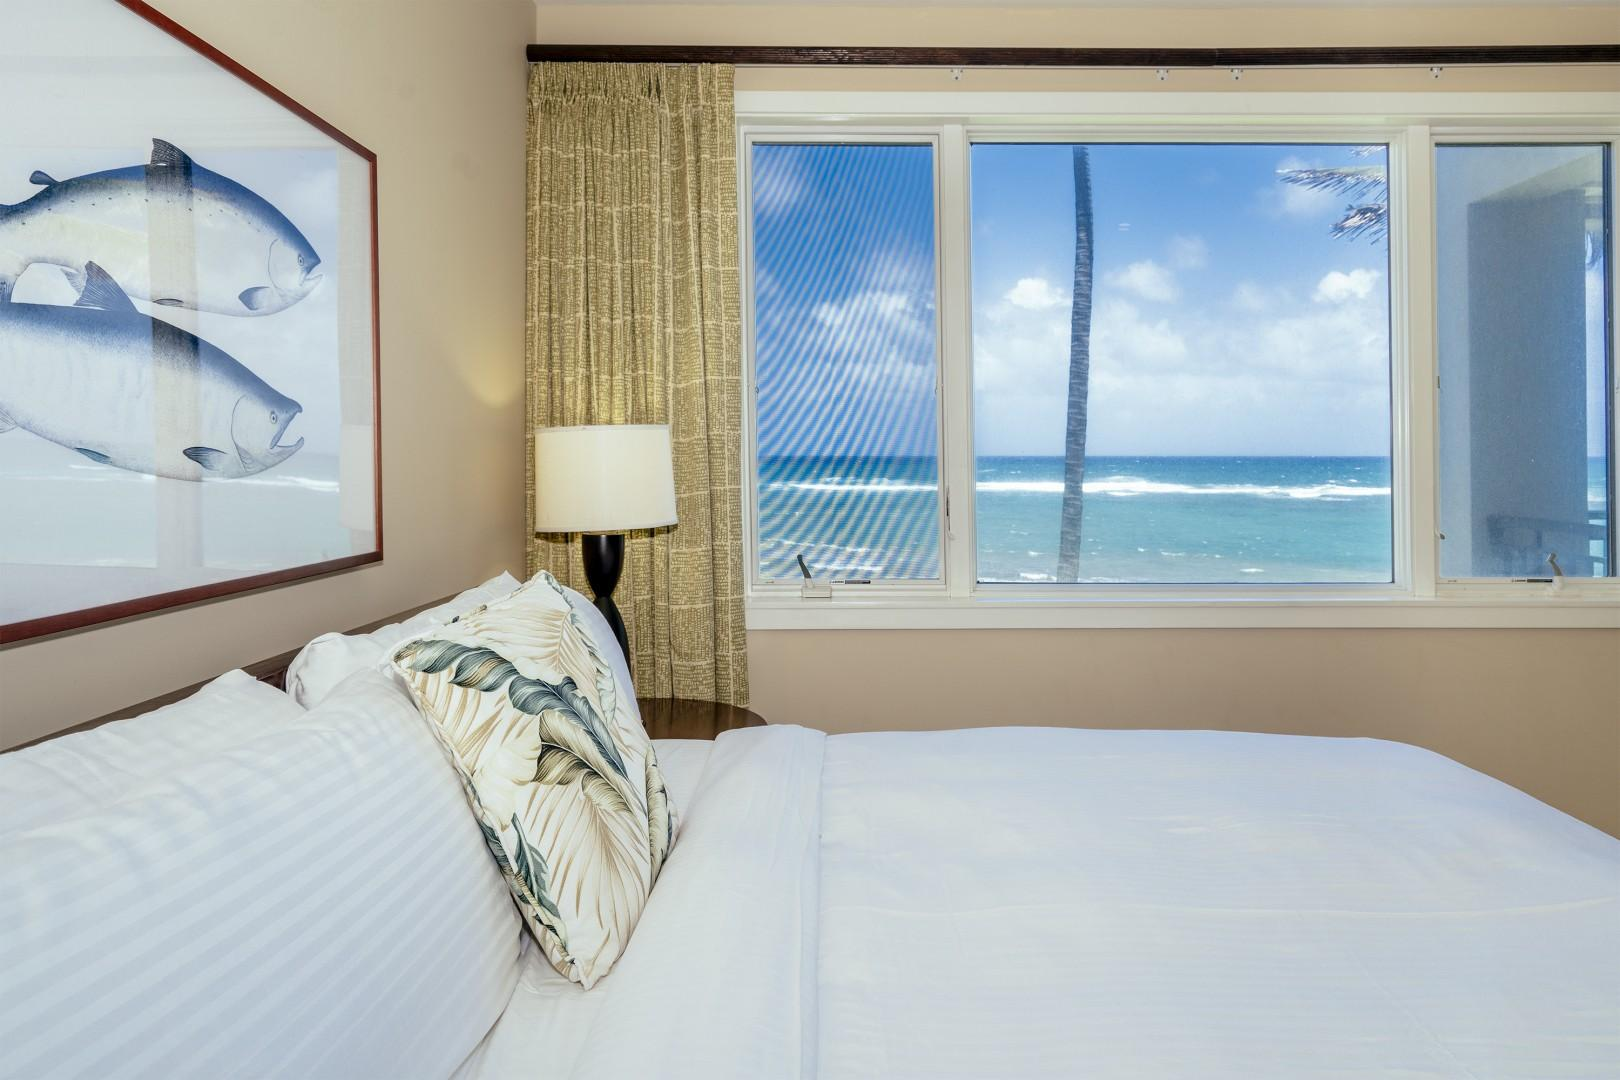 Your own peaceful ocean view.